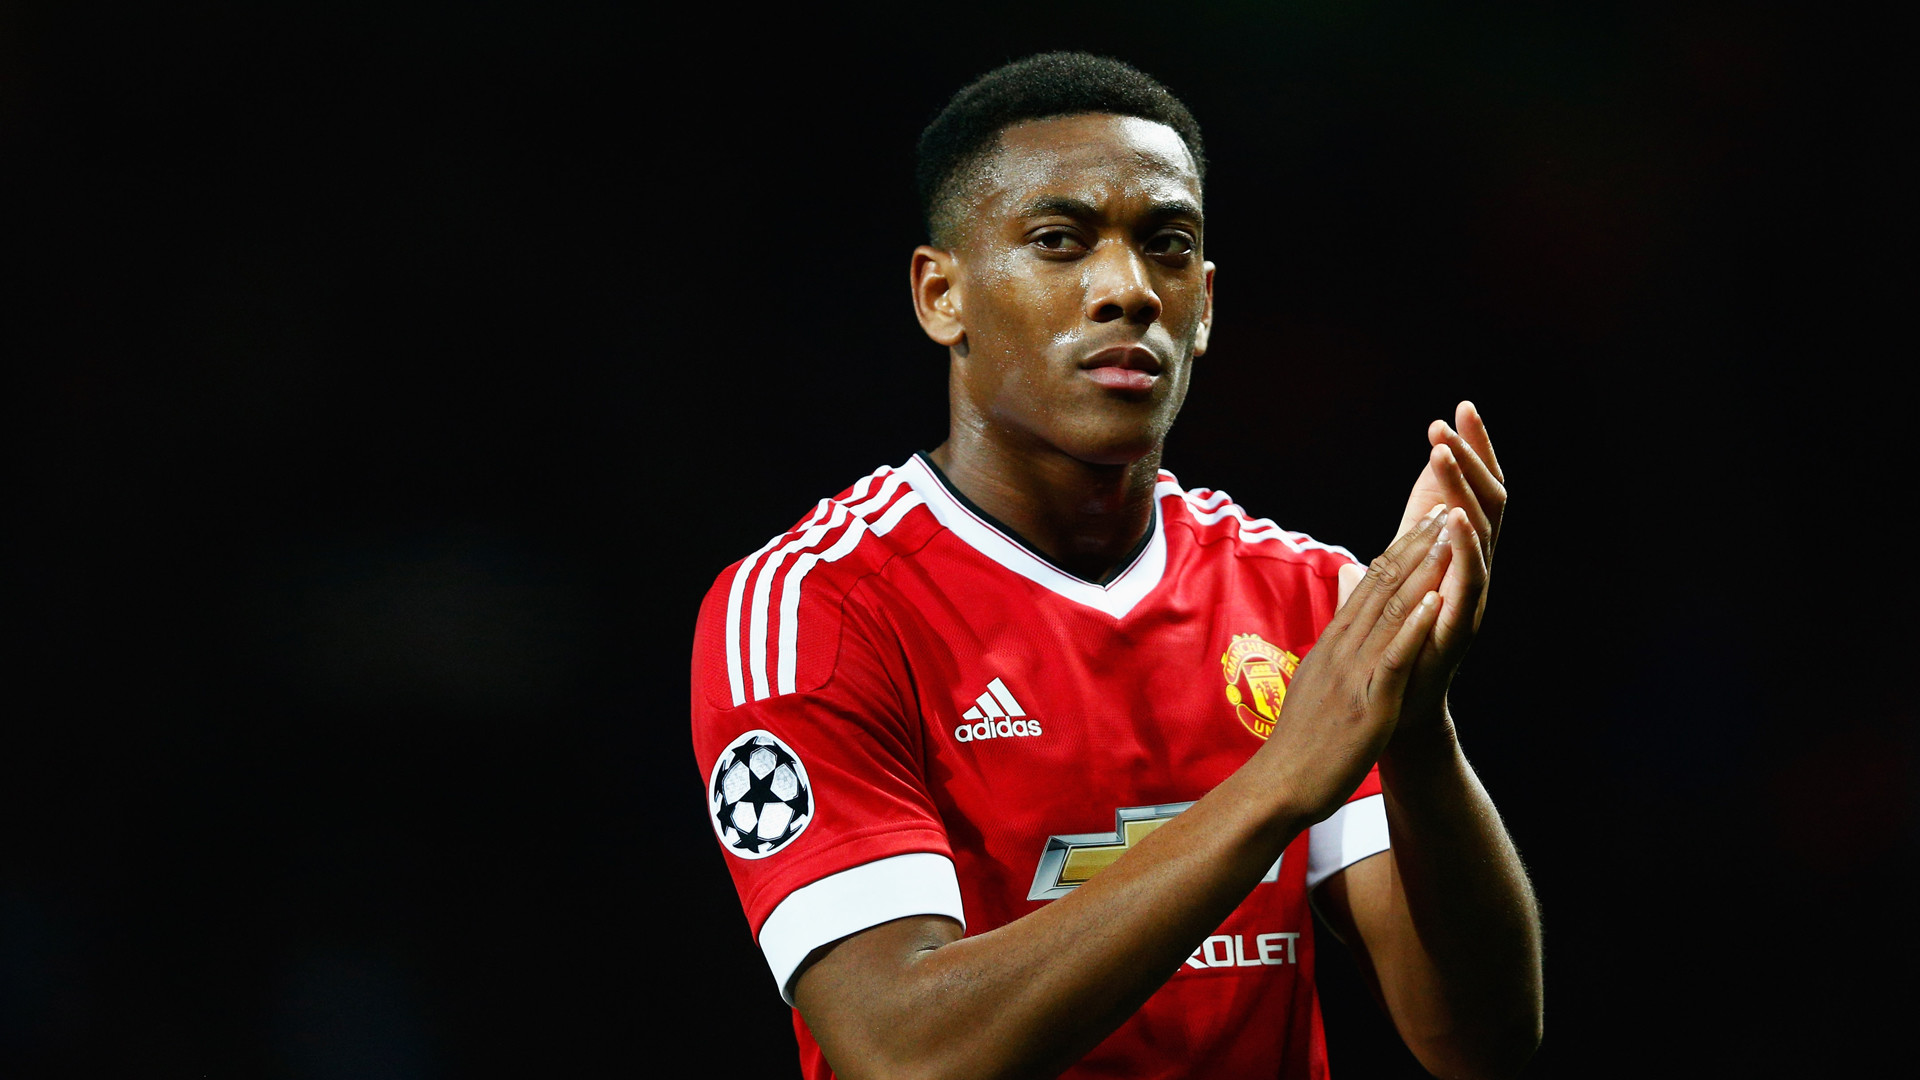 f3d2a9099 1920x1080 Background Wallpaper Anthony Martial Keren